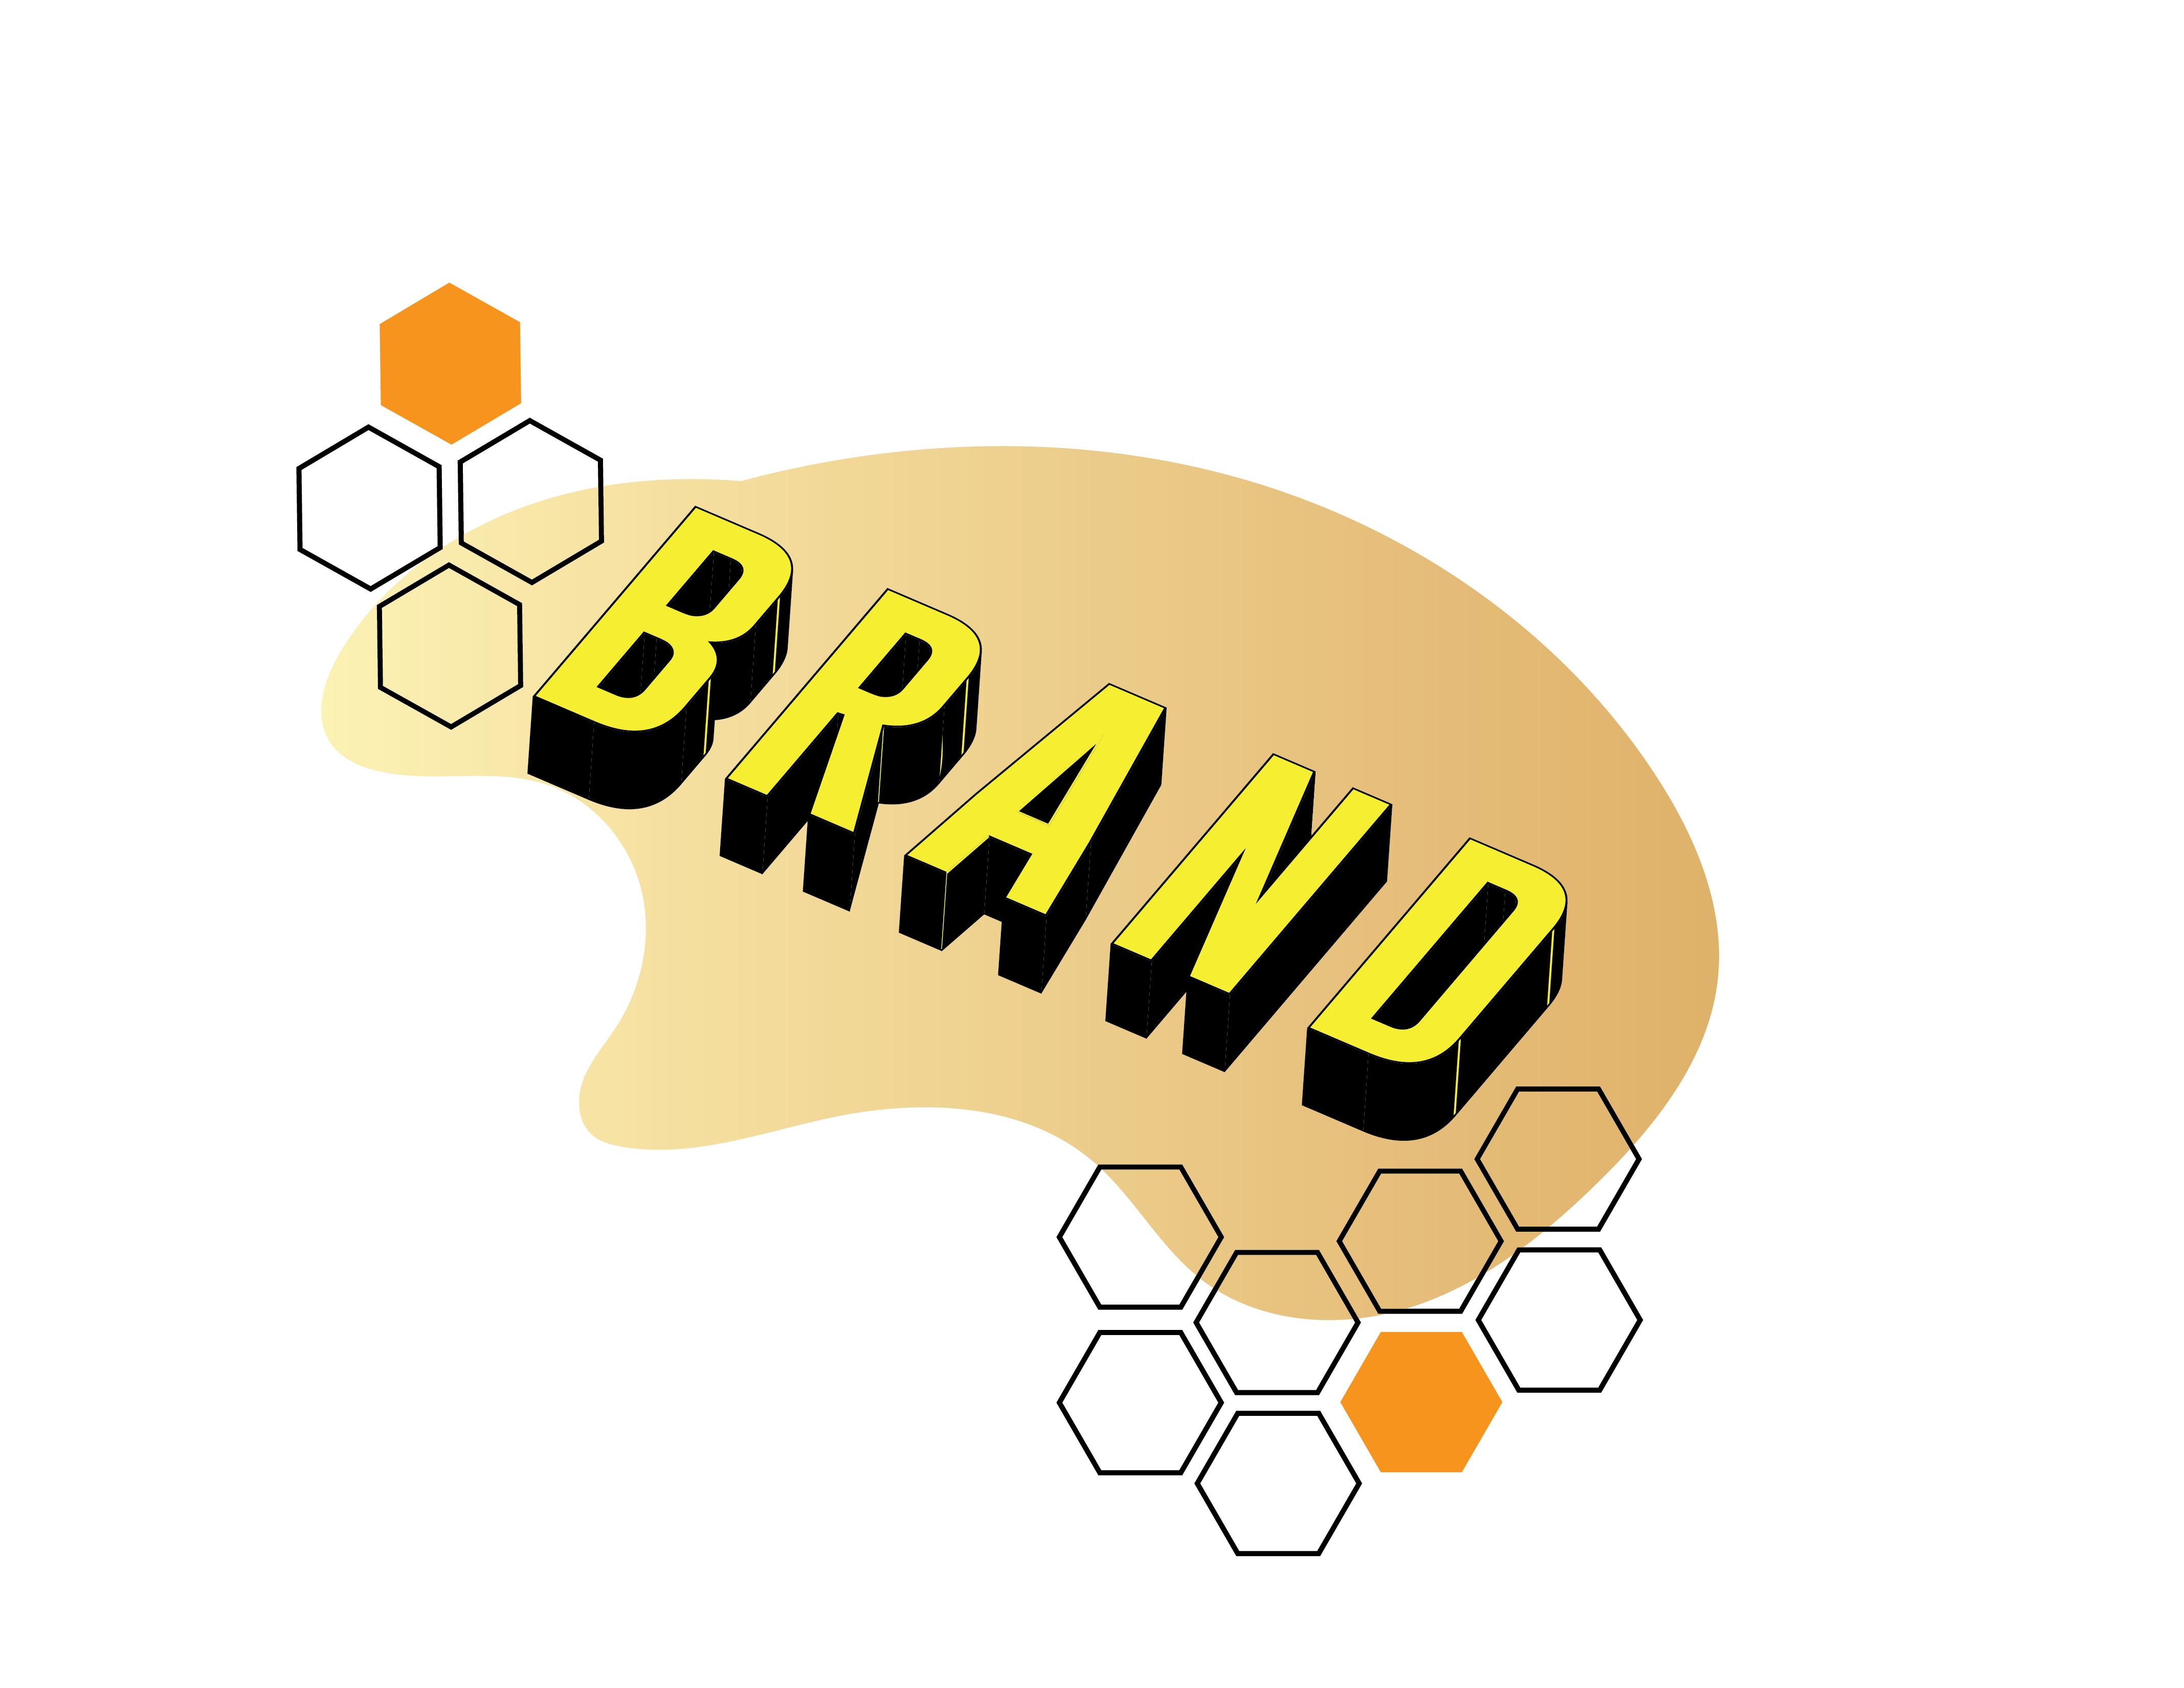 Graphic Design of the word Brand for services